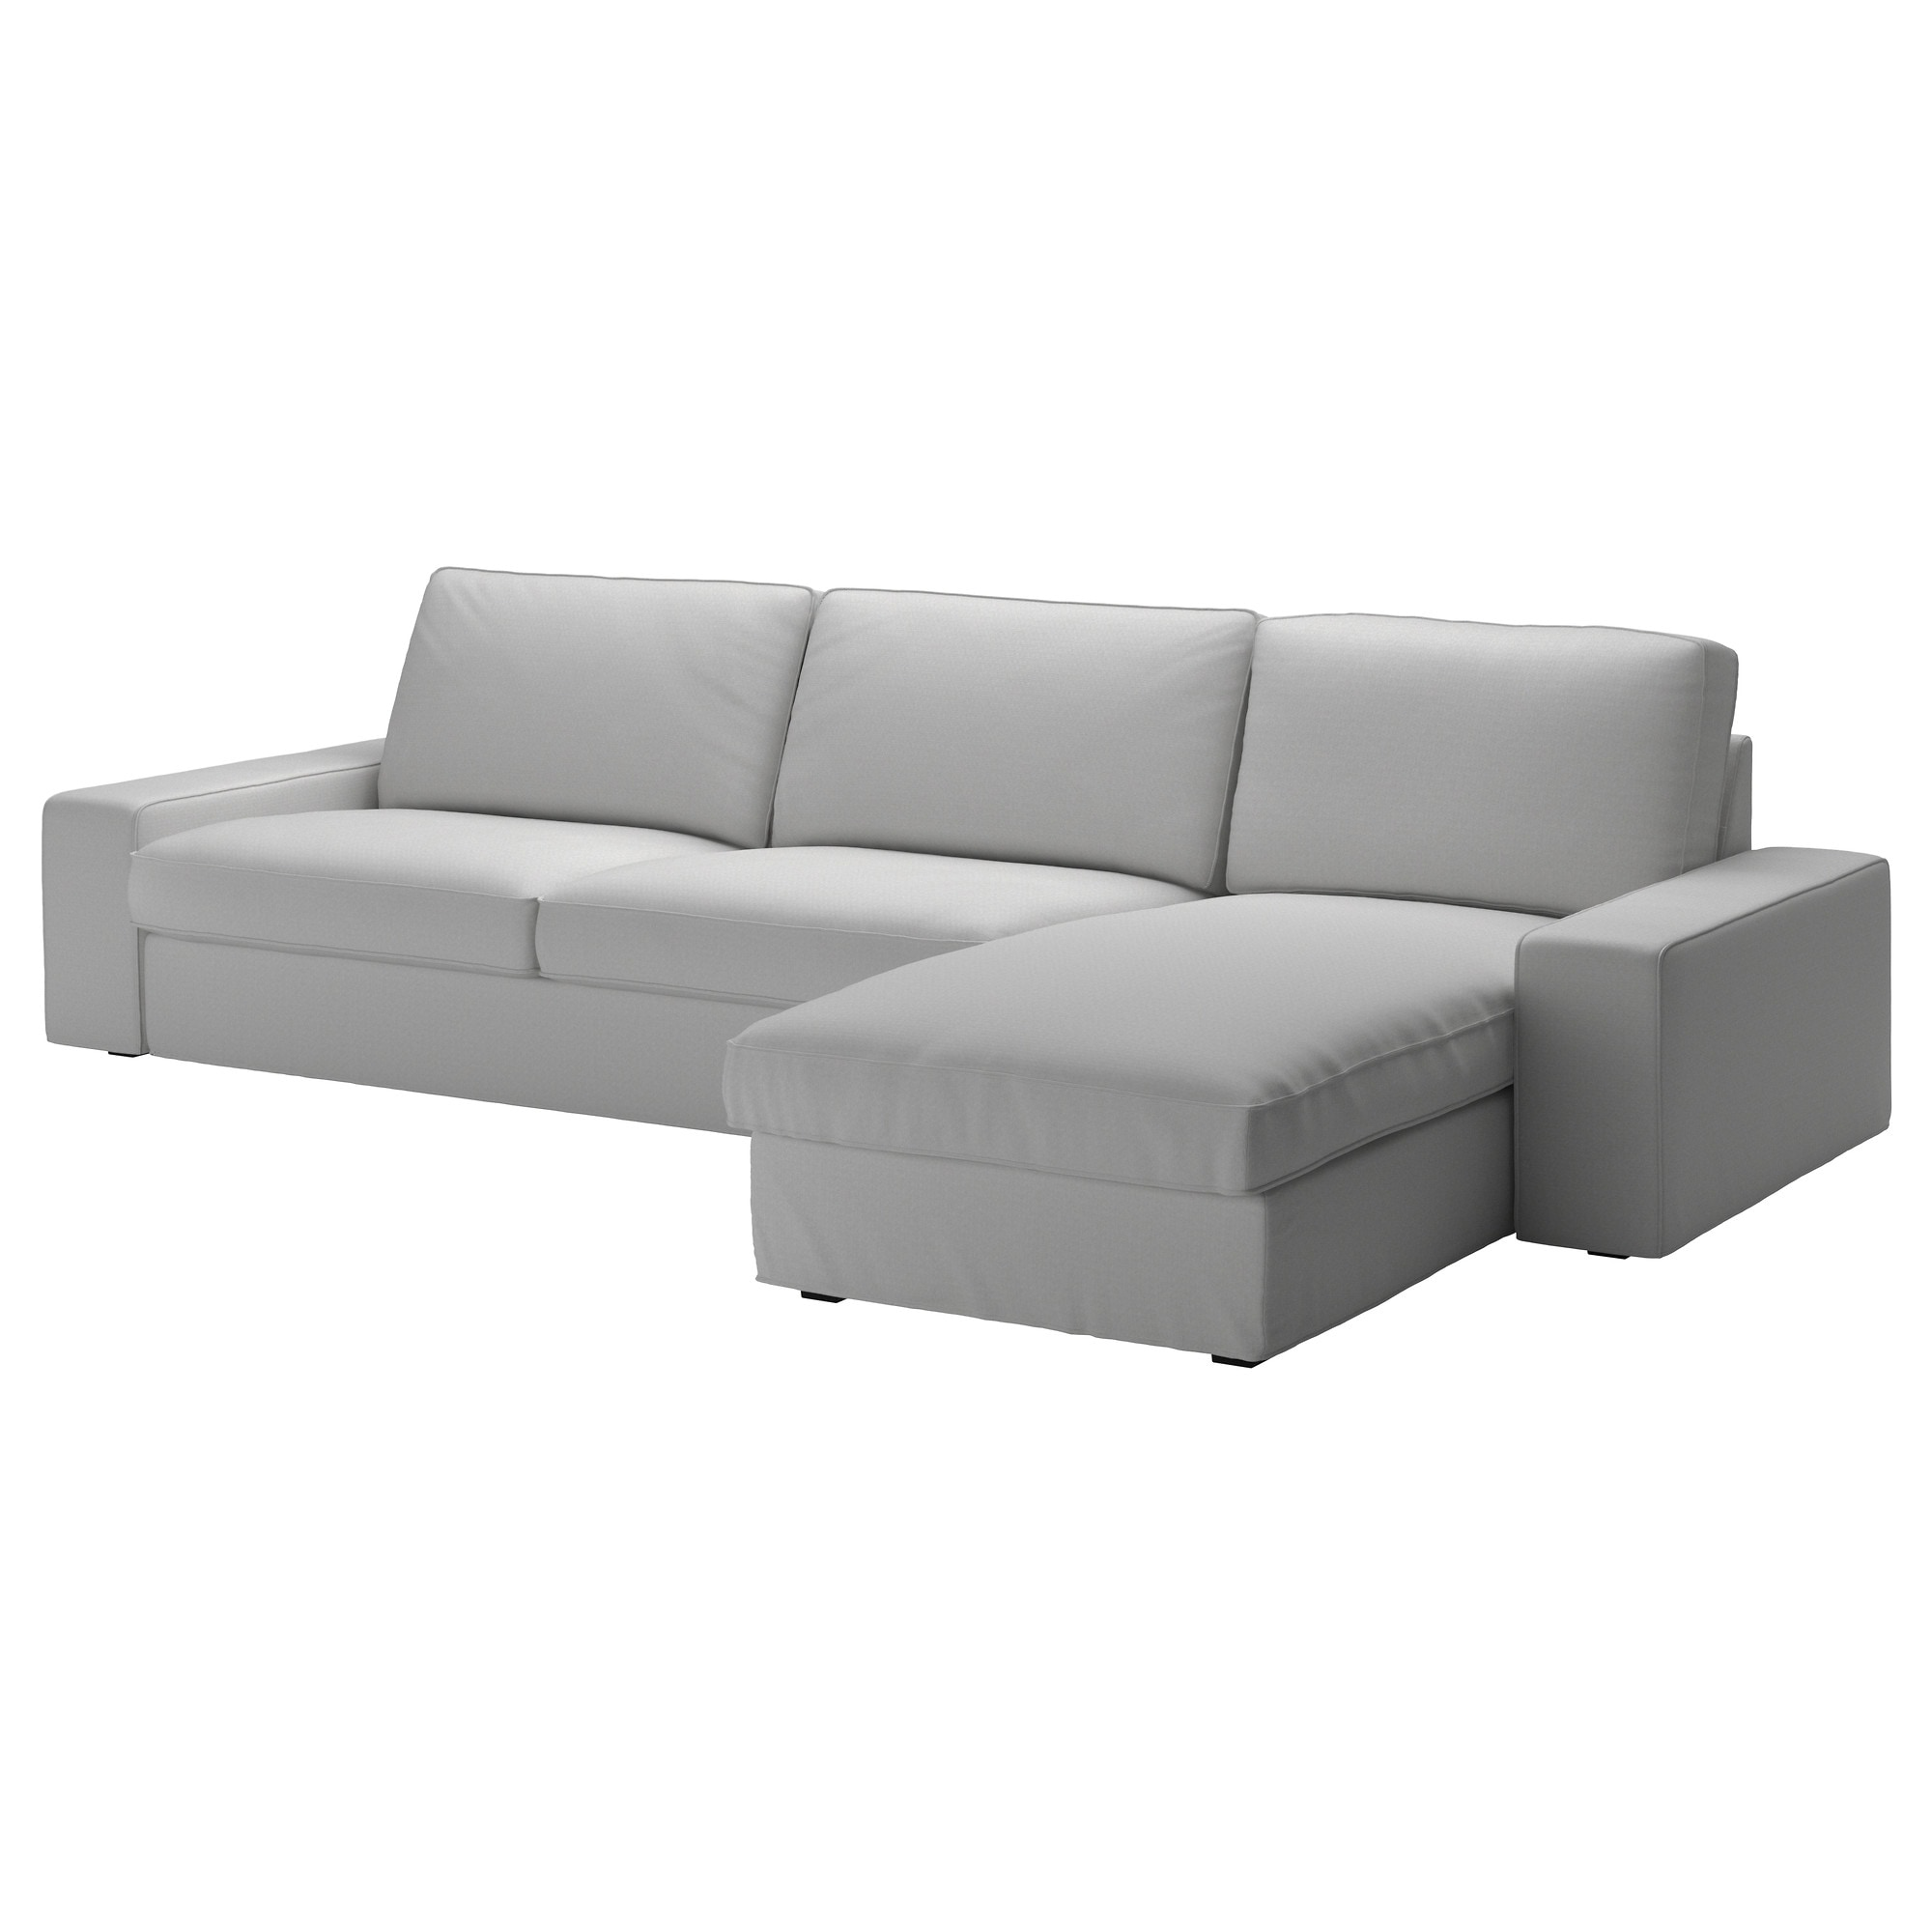 Genial KIVIK Sectional, 4 Seat   Orrsta Light Gray   IKEA